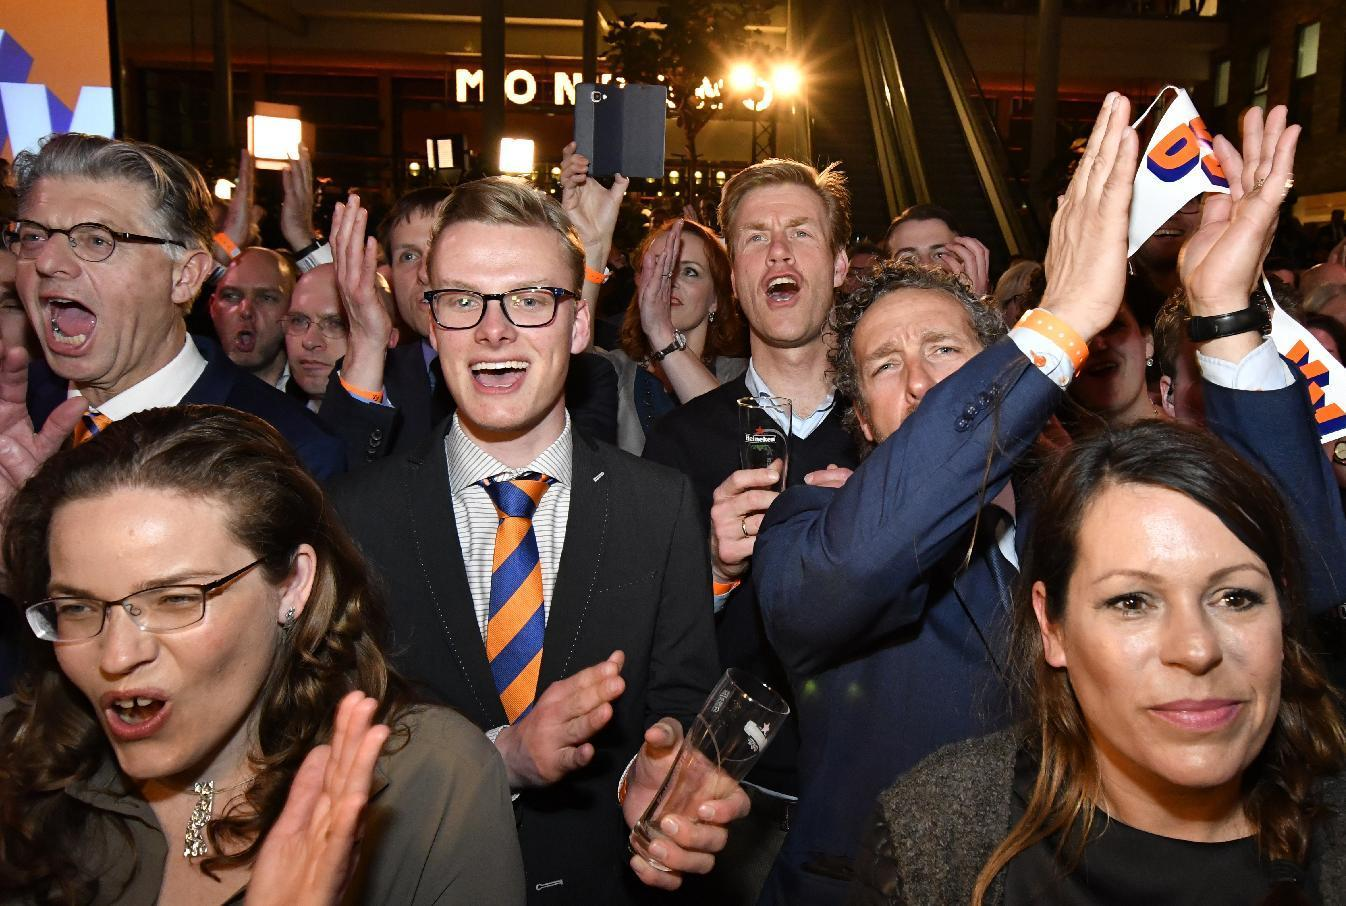 Supporters of Prime Minister Mark Rutte of the free-market VVD party cheer during Rutte's first appearance after exit poll results of the parliamentary elections were announced in The Hague, Netherlands, Wednesday, March 15, 2017. (AP Photo/Patrick Post)